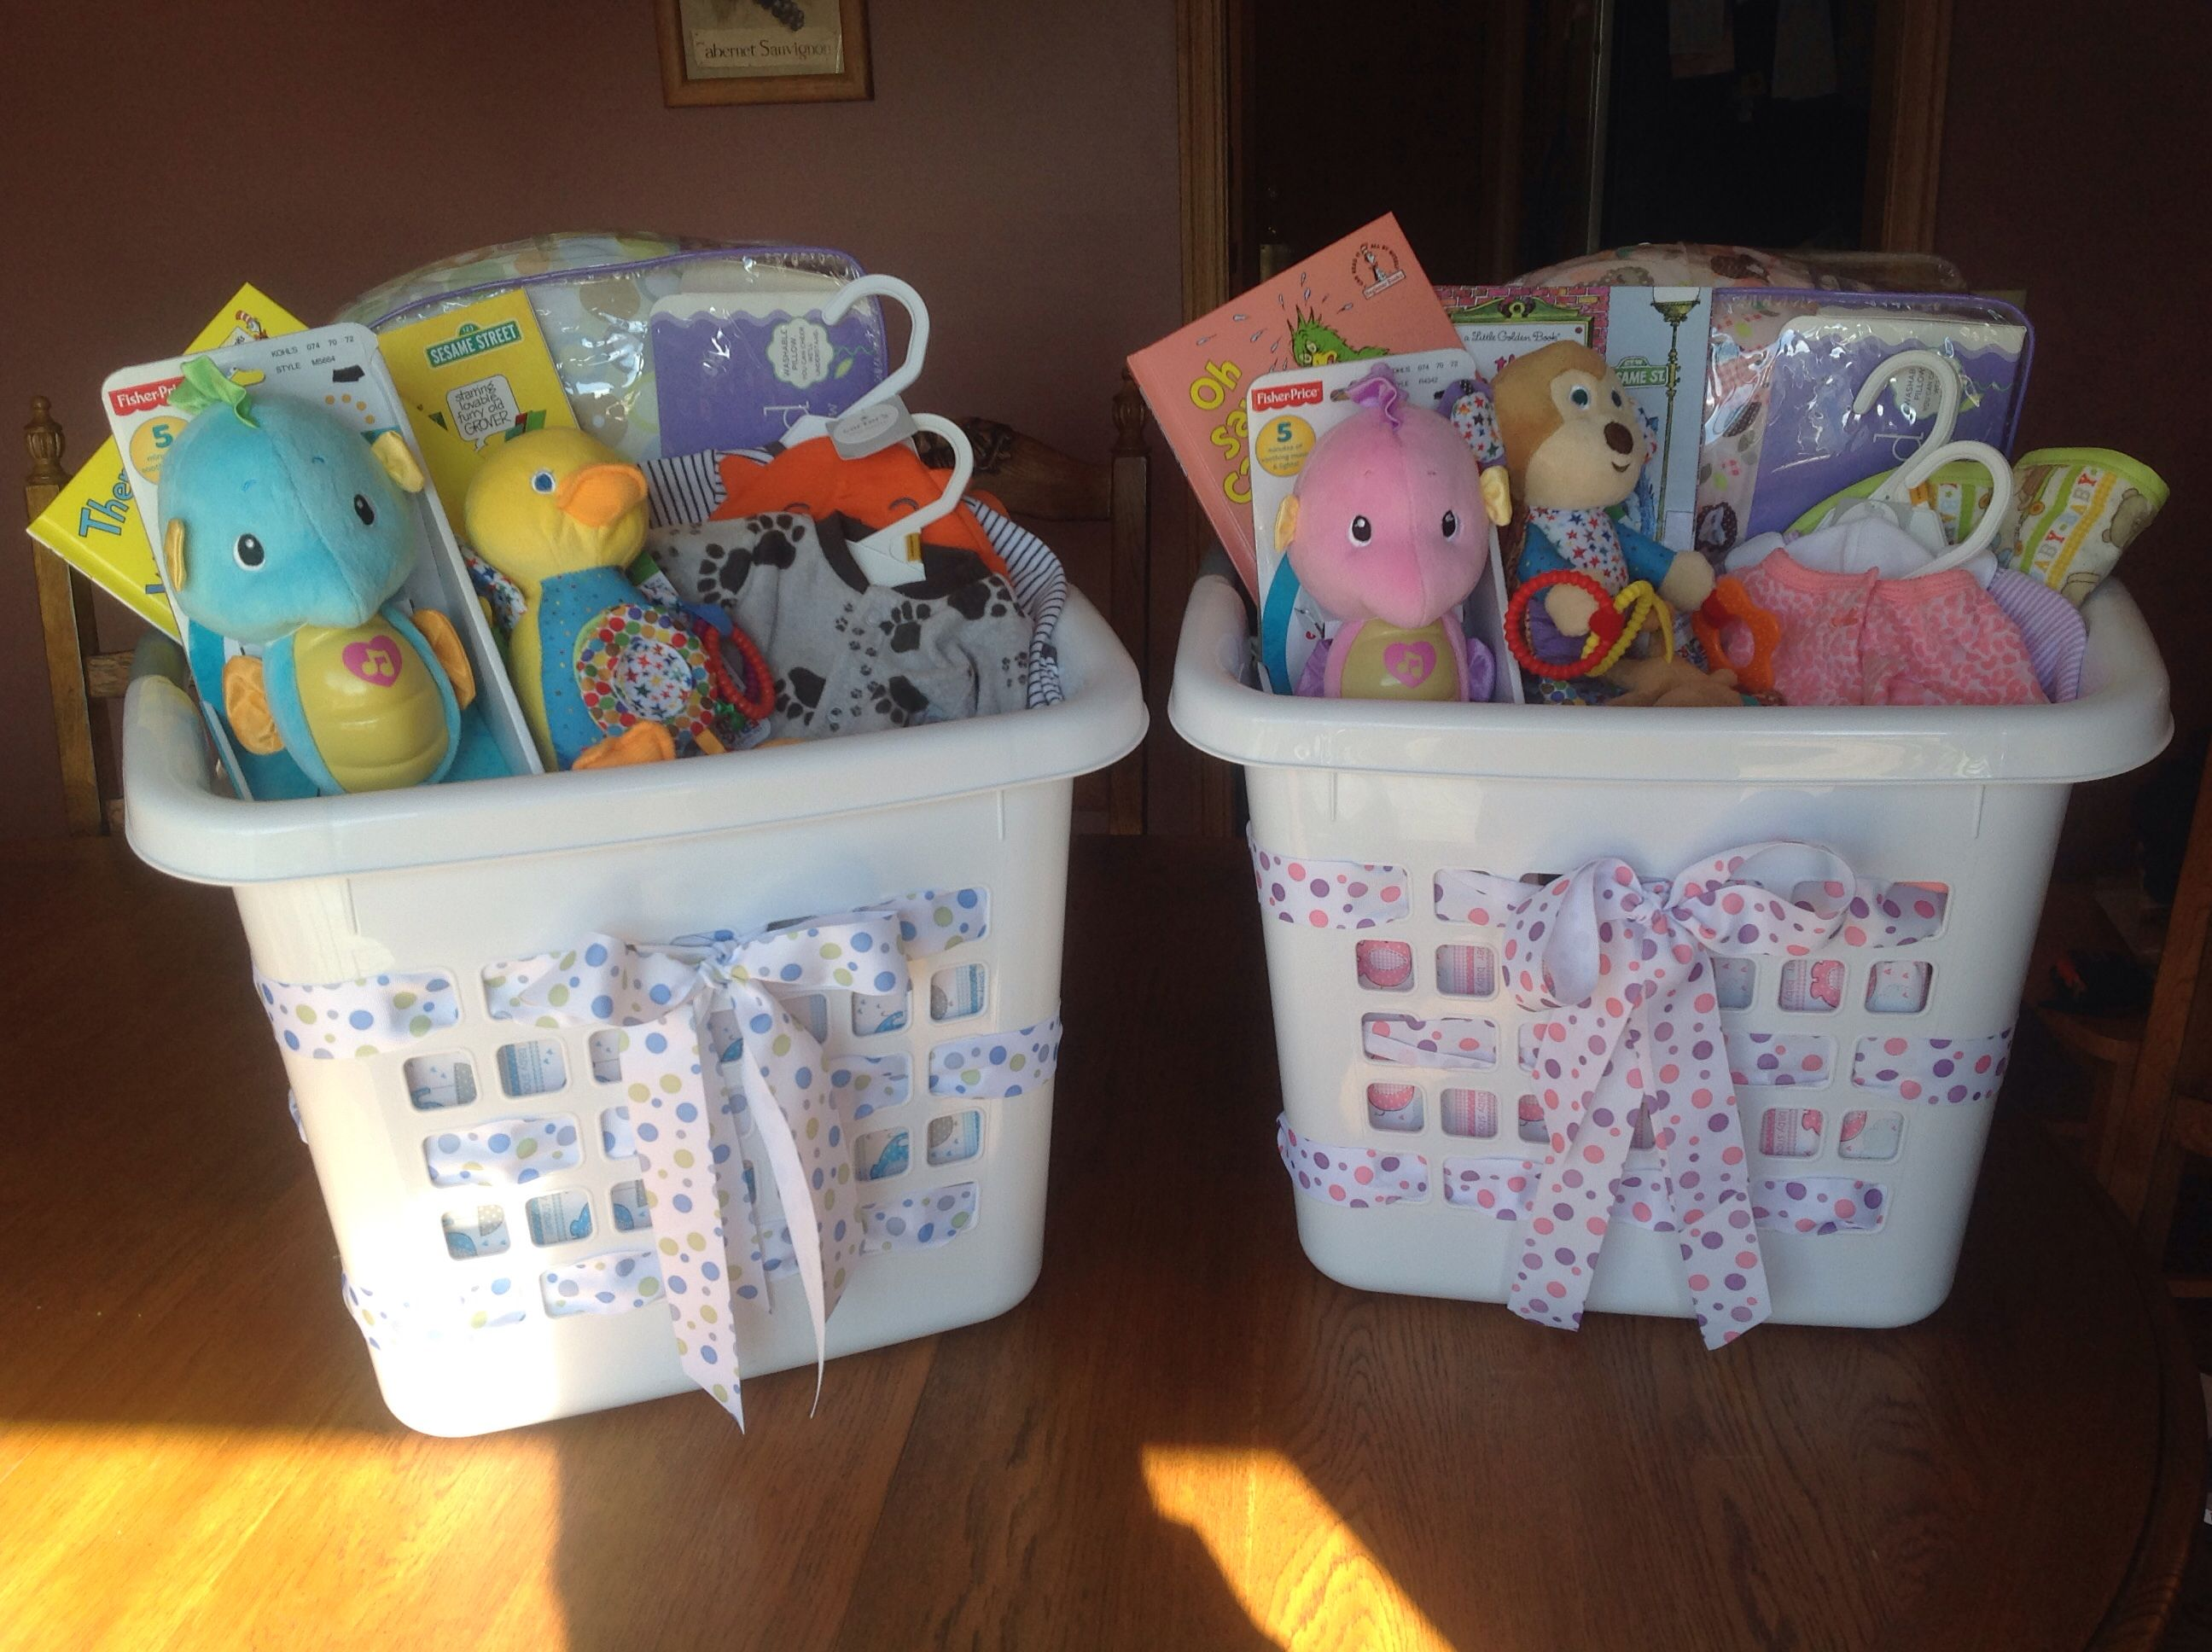 Baby Laundry Basket Gift Use Laundry Basket As Quotgift Bag Quot For Baby Shower Gifts I